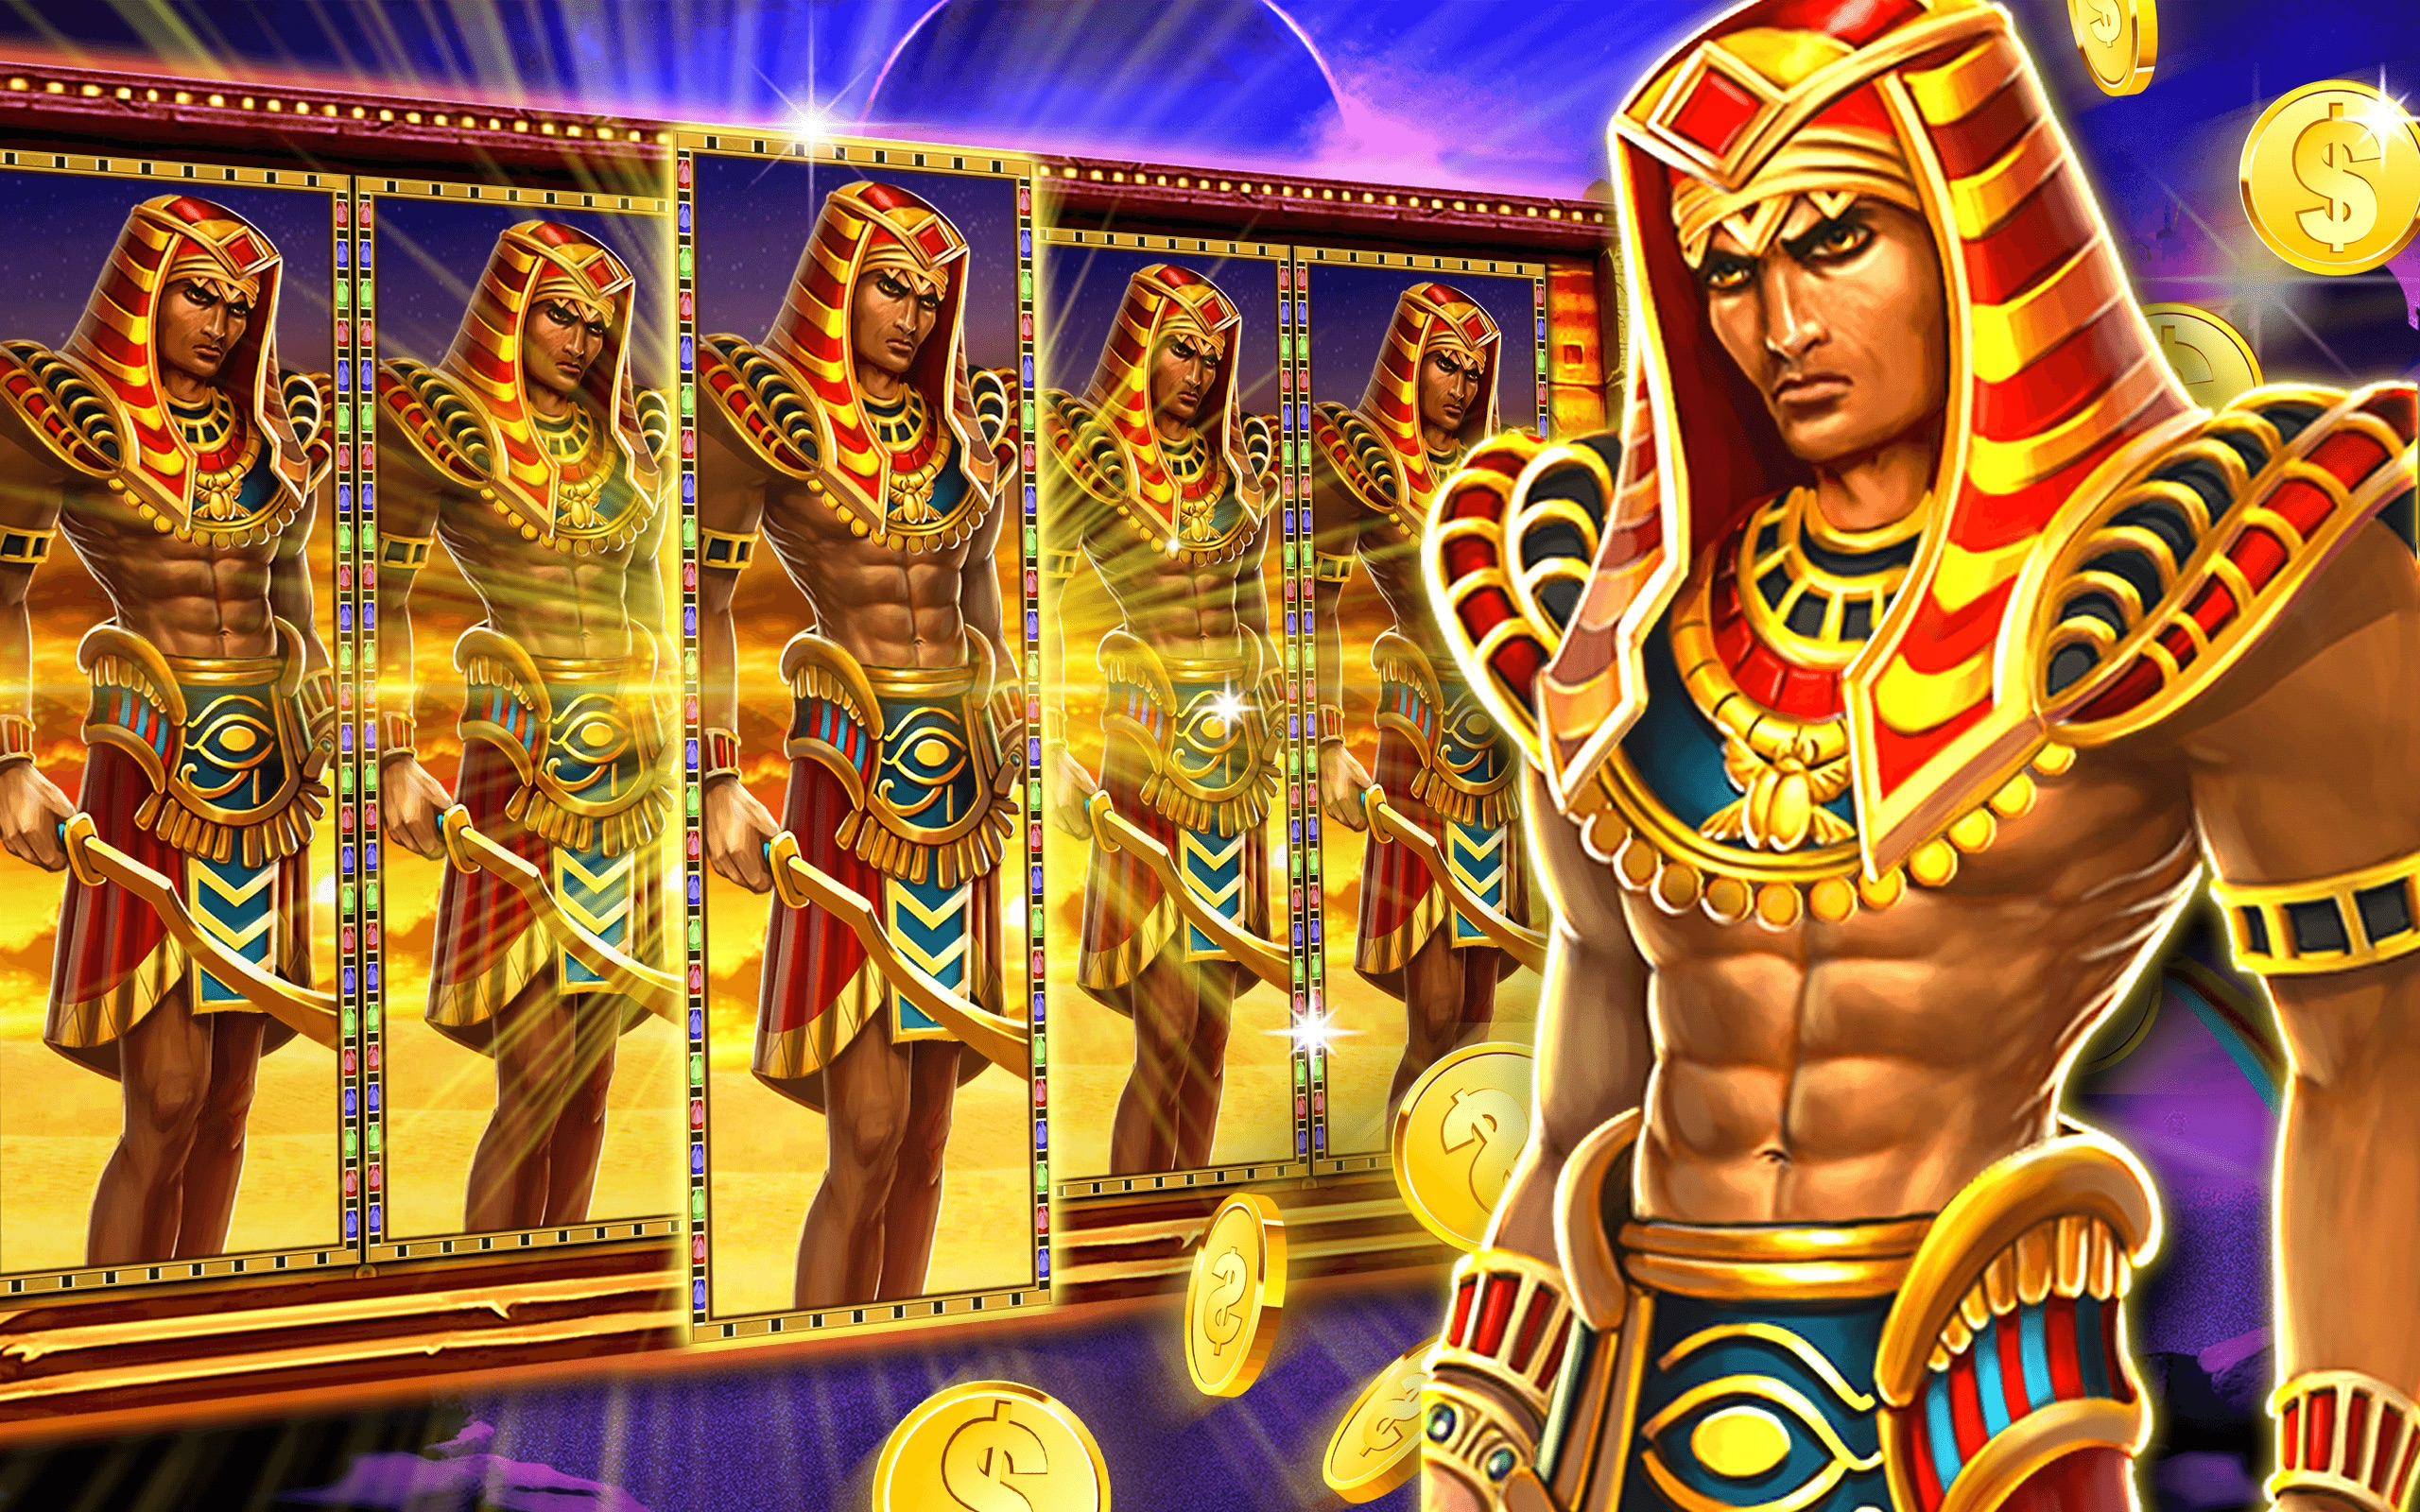 Amazon.com: Pharaohs of Egypt Slots ™: Appstore for Android